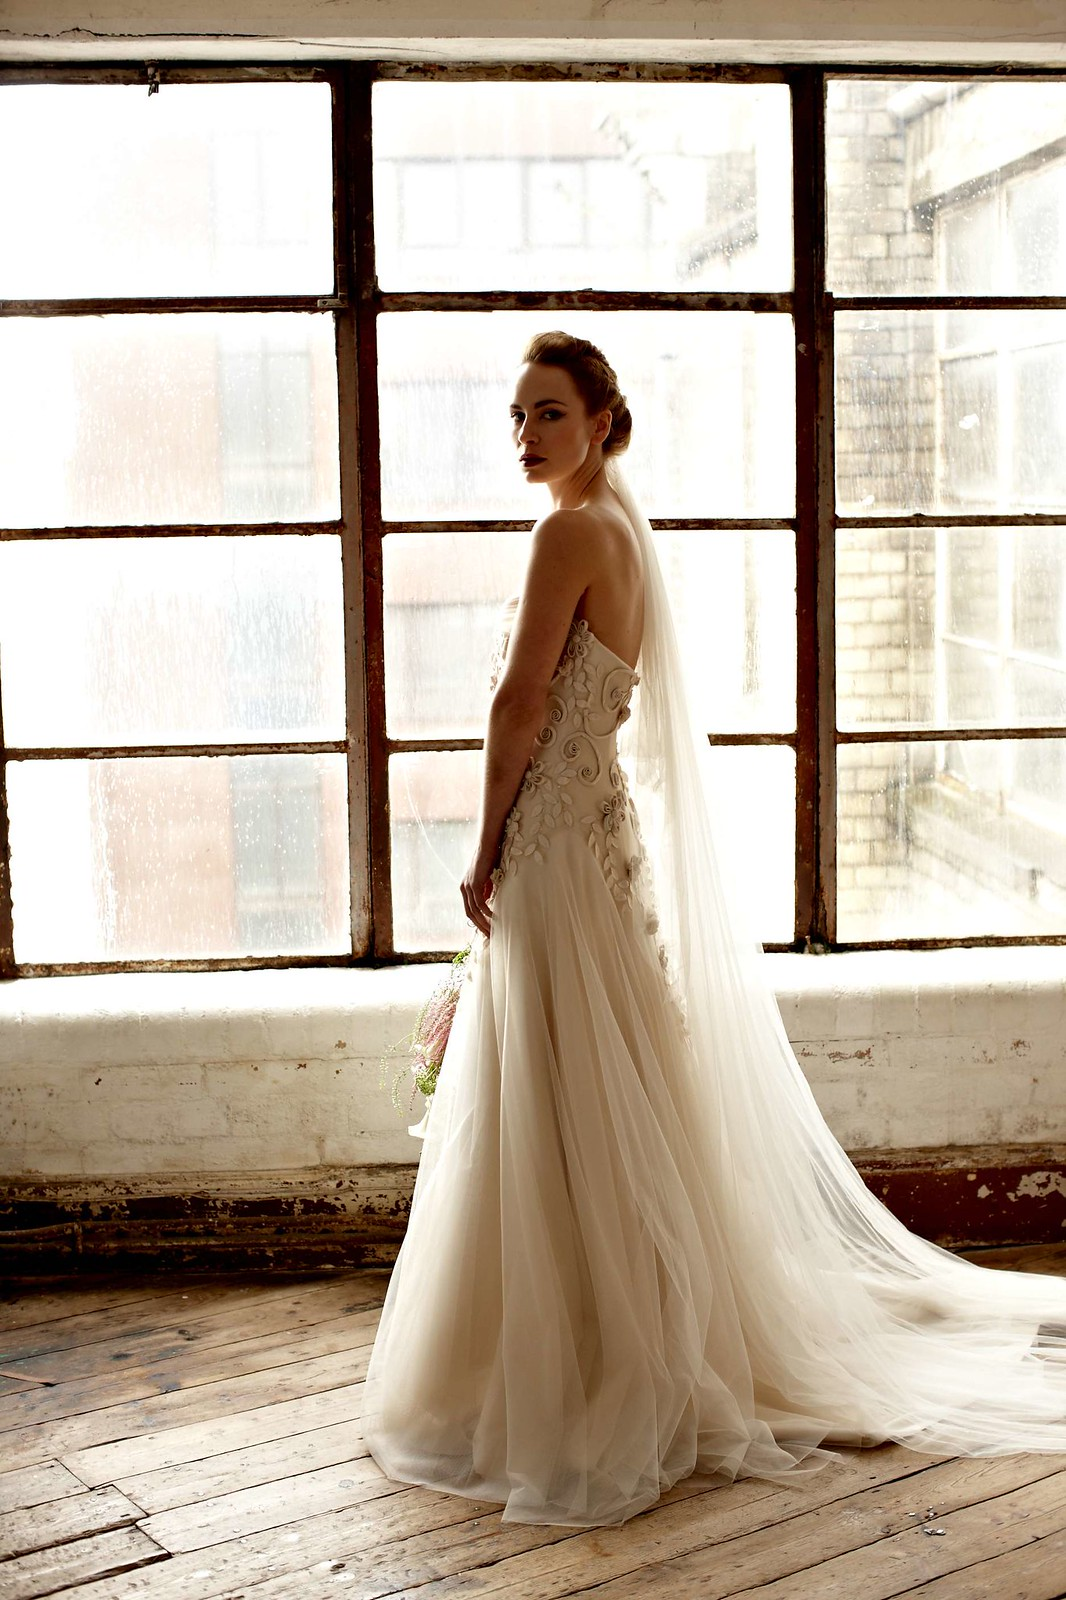 champagne gown by Suzanne Neville, creating a different but dramatic look | itakeyou.co.uk